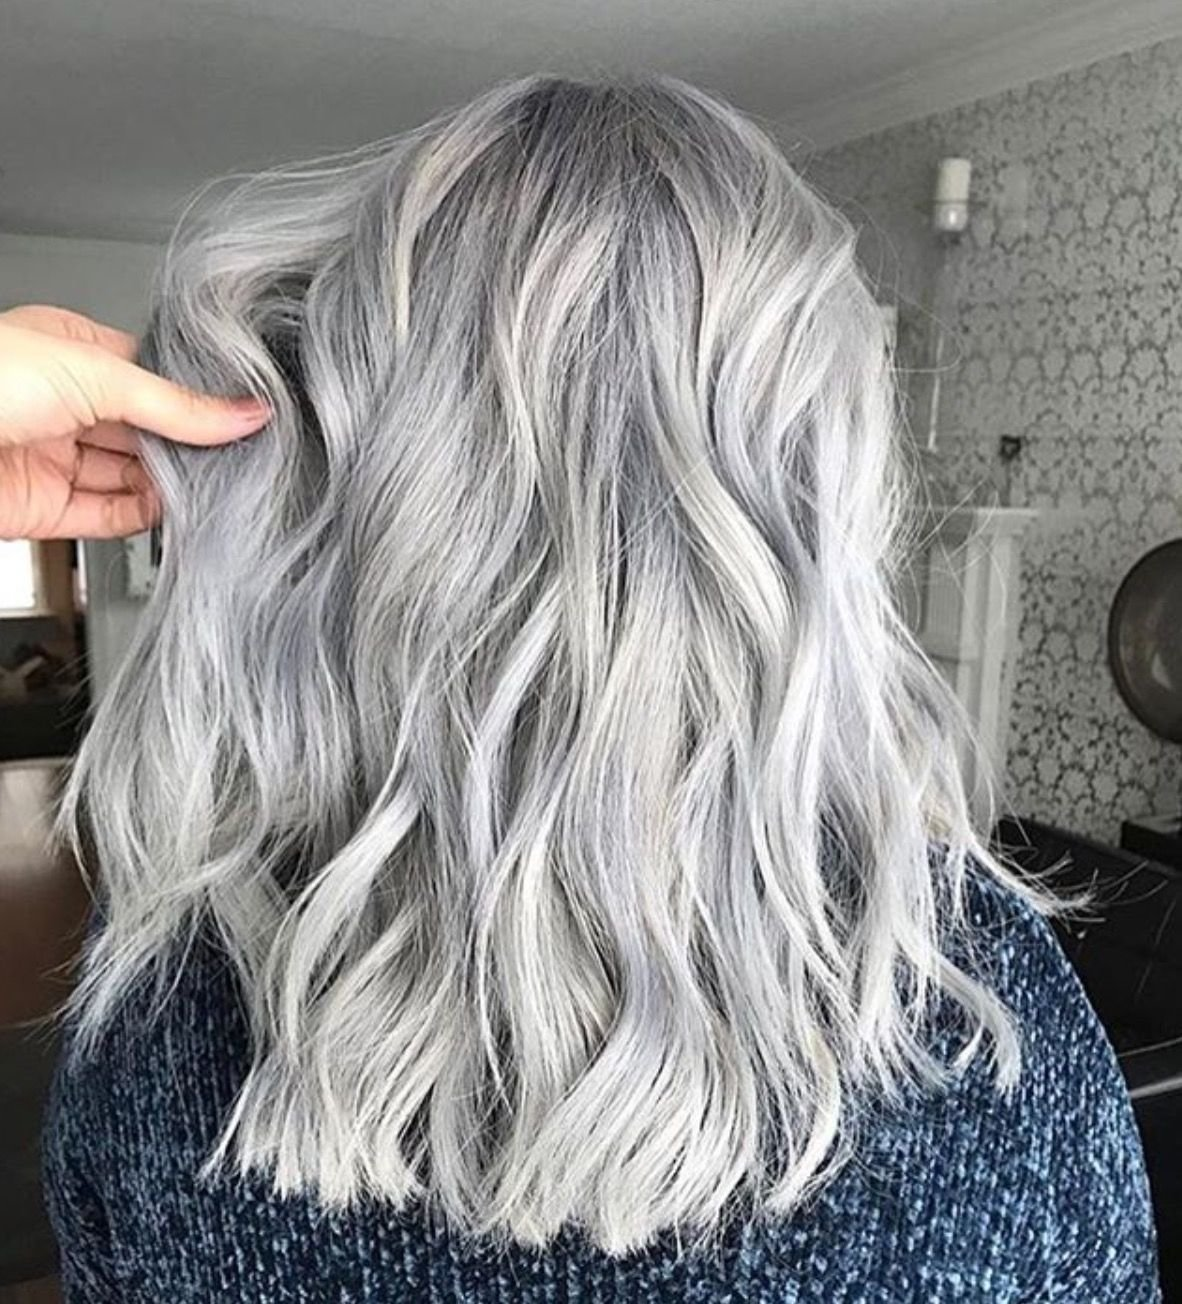 The Best The 25 Best Hair Color Silver Grey Ideas On Pinterest Gray Silver Hair Grey Dyed Hair And Pictures